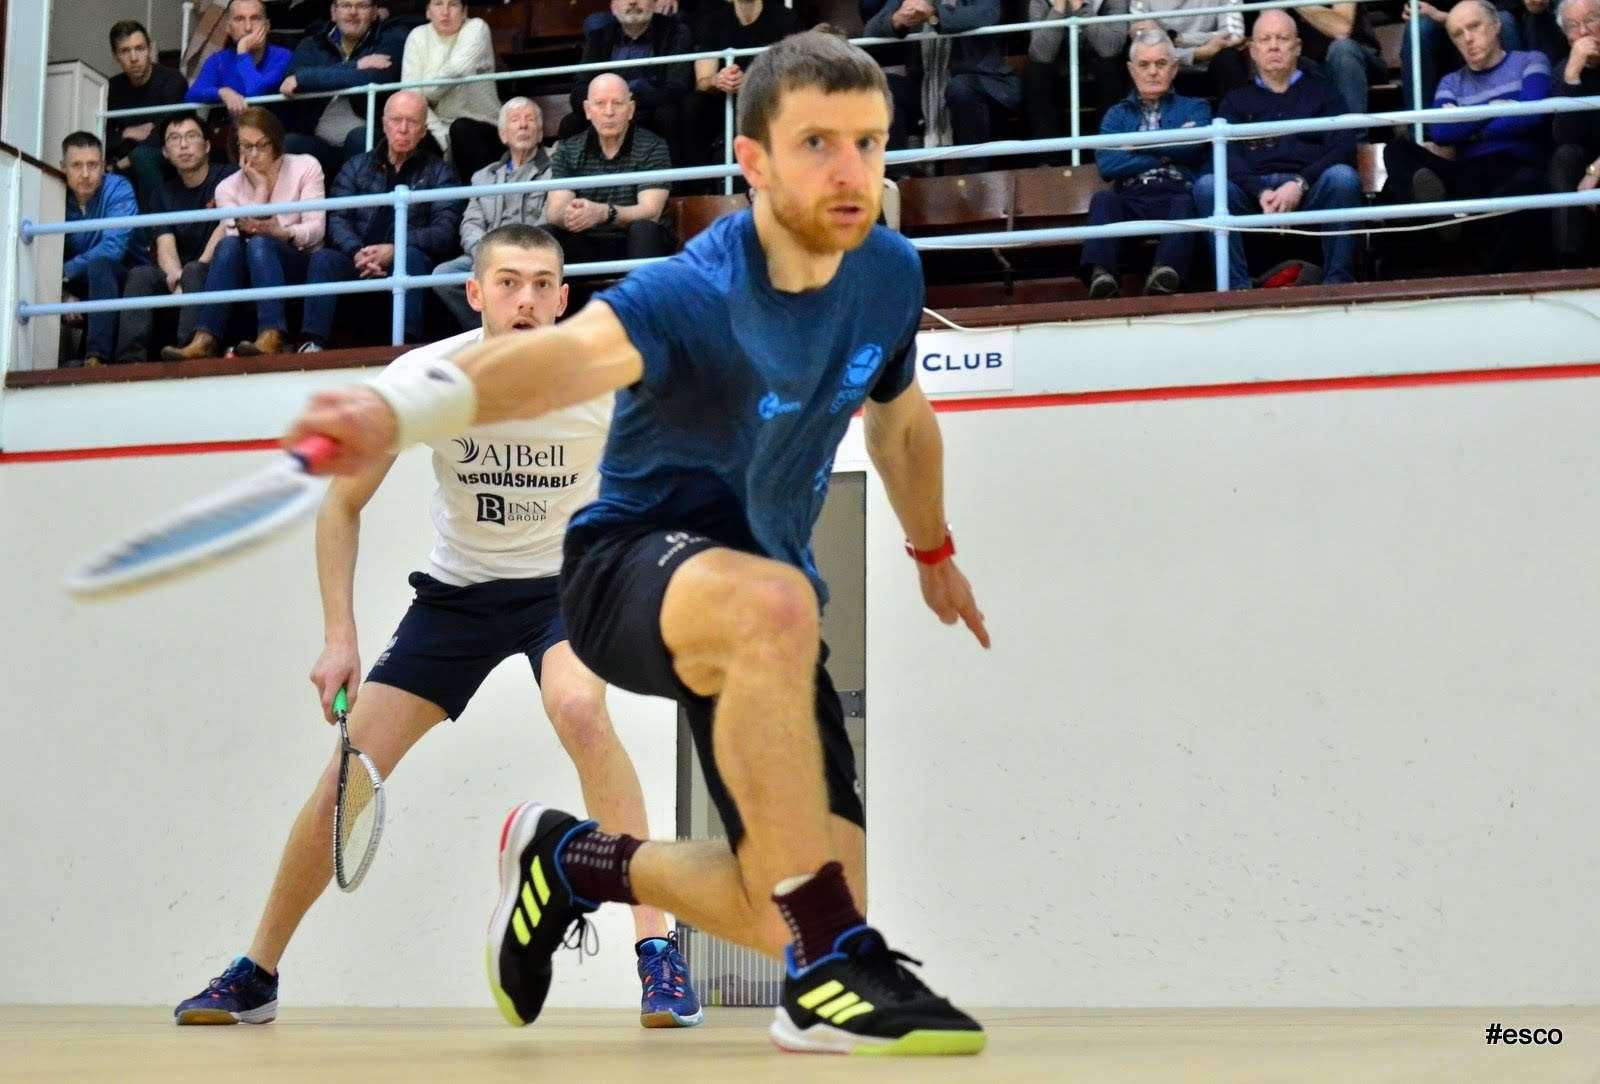 Alan Clyne is considering staying in squash as a coach after he stops playing. Picture: Steve Cubbins